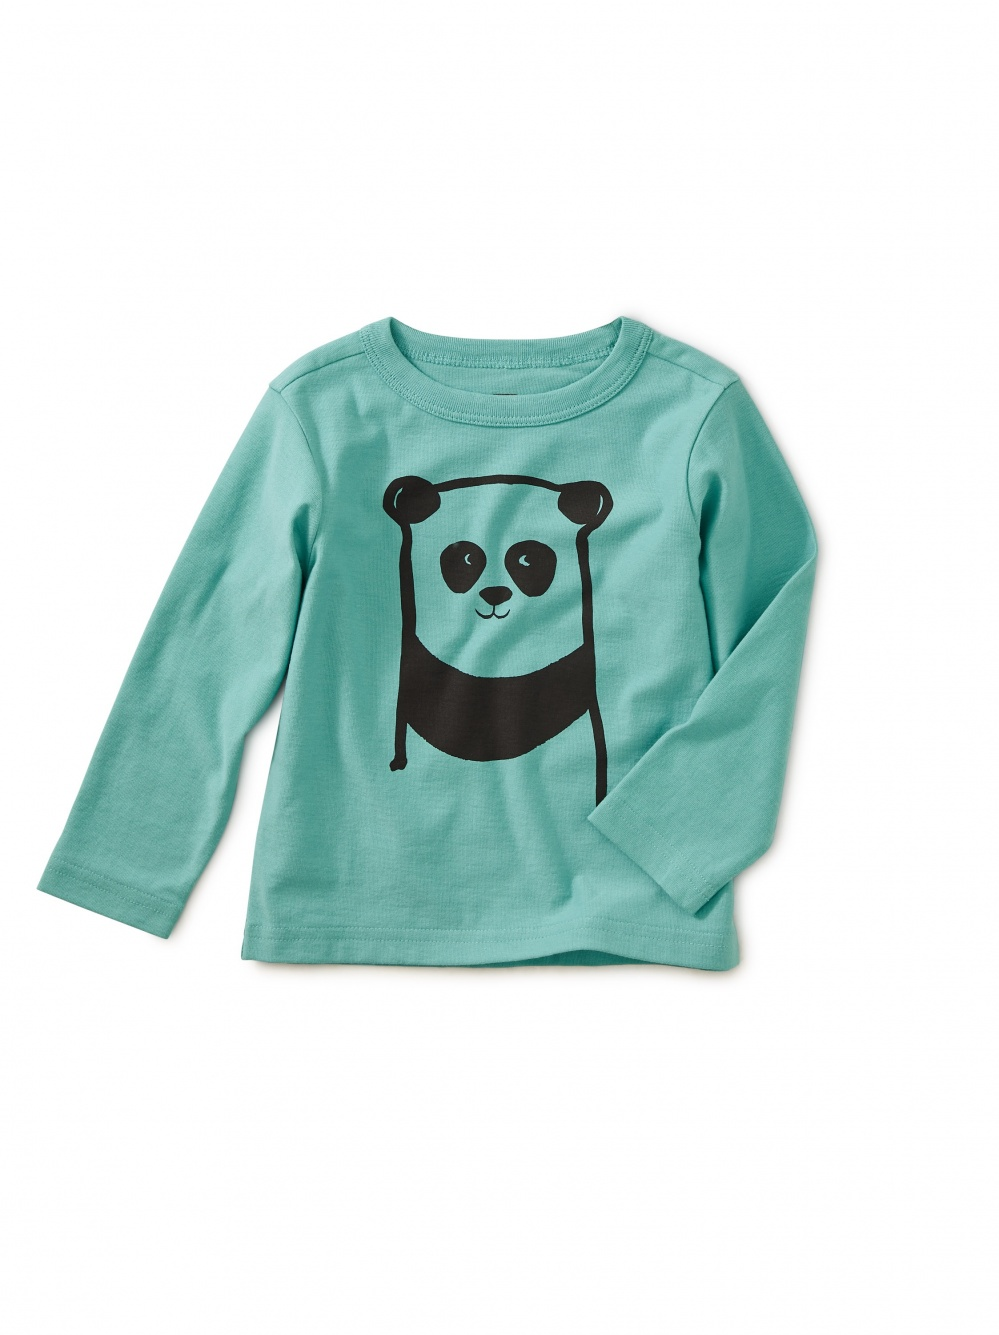 I'm A Panda Graphic Baby Tee